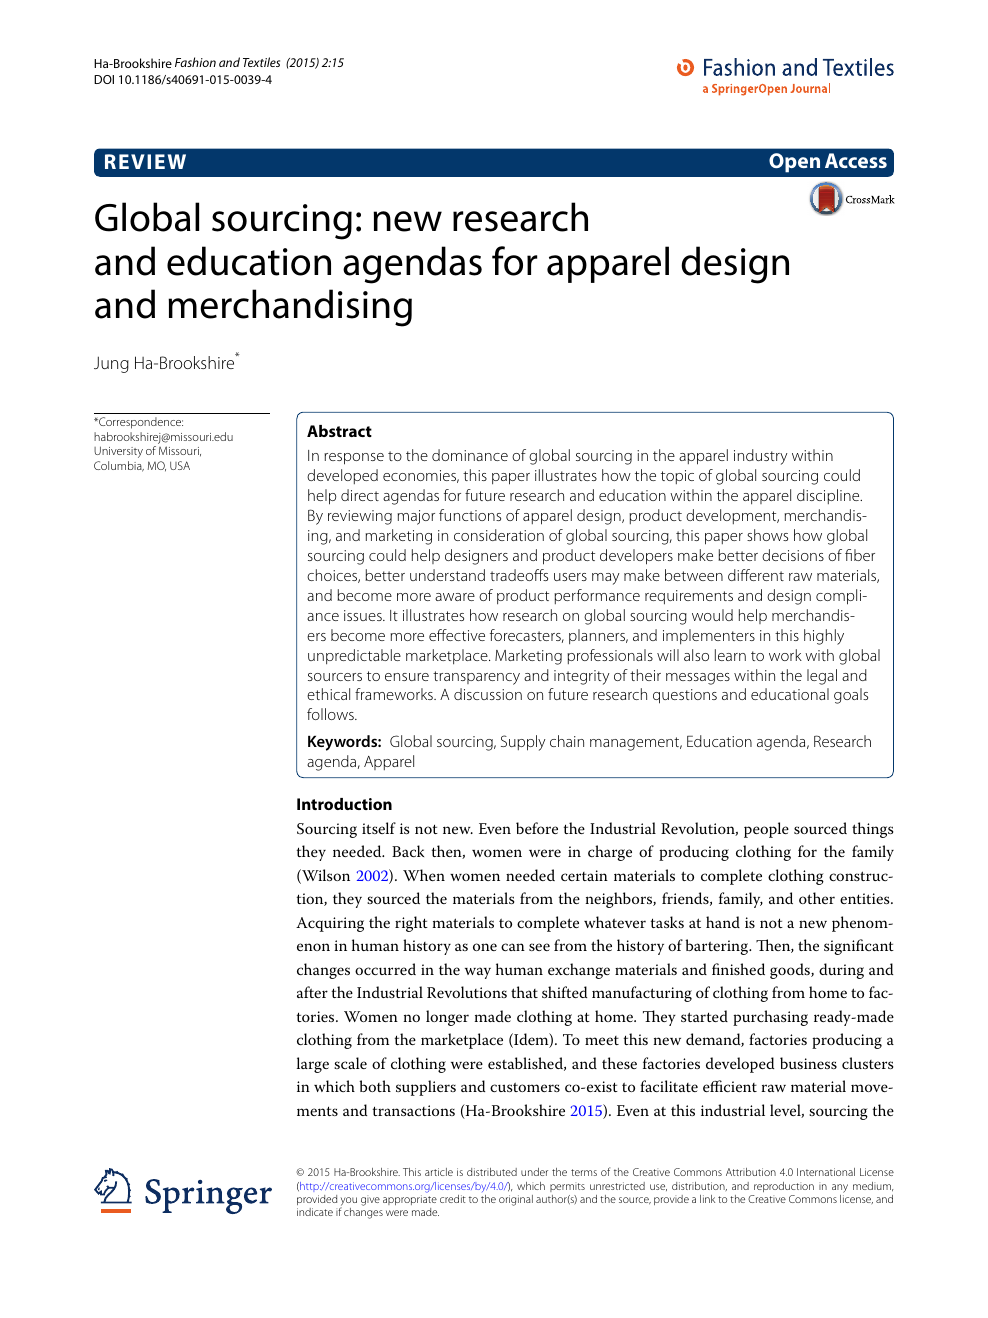 Global Sourcing New Research And Education Agendas For Apparel Design And Merchandising Topic Of Research Paper In Economics And Business Download Scholarly Article Pdf And Read For Free On Cyberleninka Open